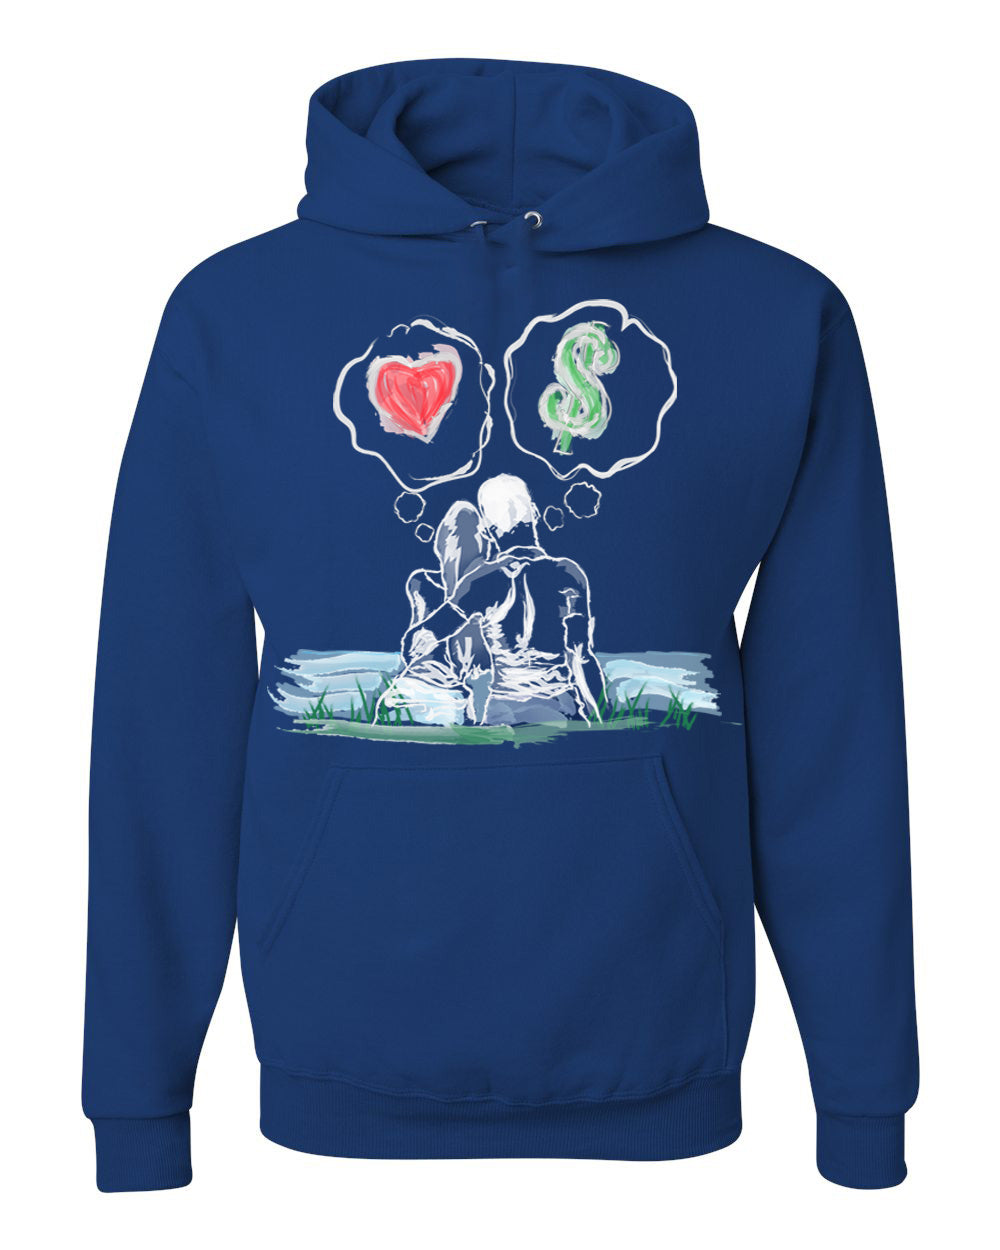 Guy Benson Collection Love Vs Money Hoodie -Royal Blue